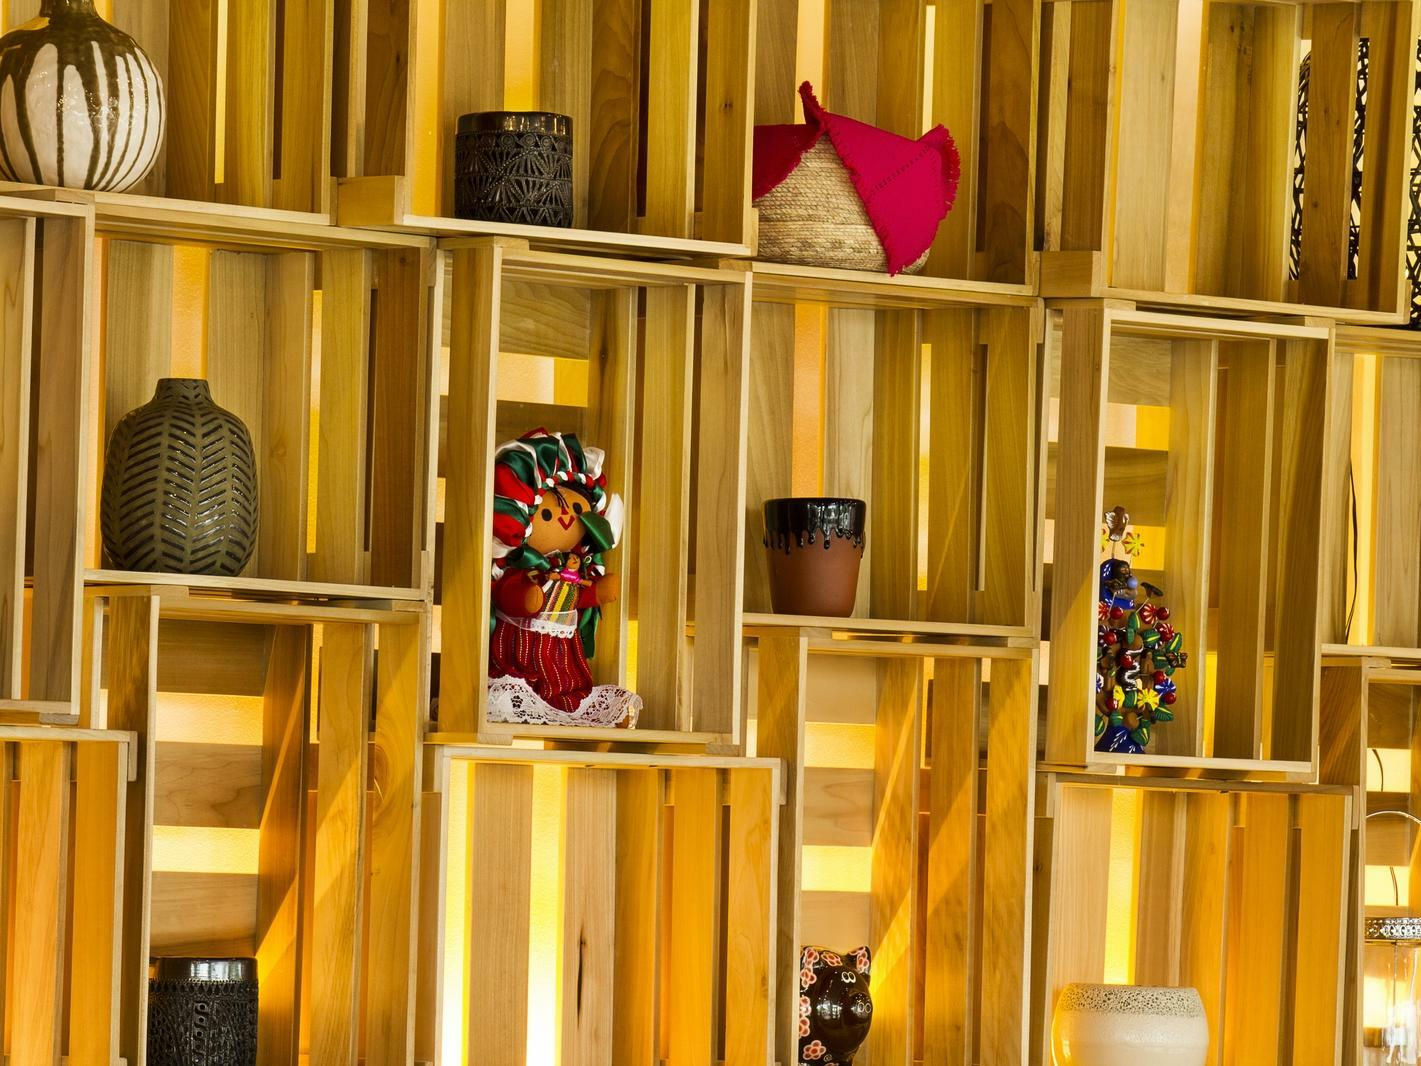 wall shelves with small art pieces or accessories